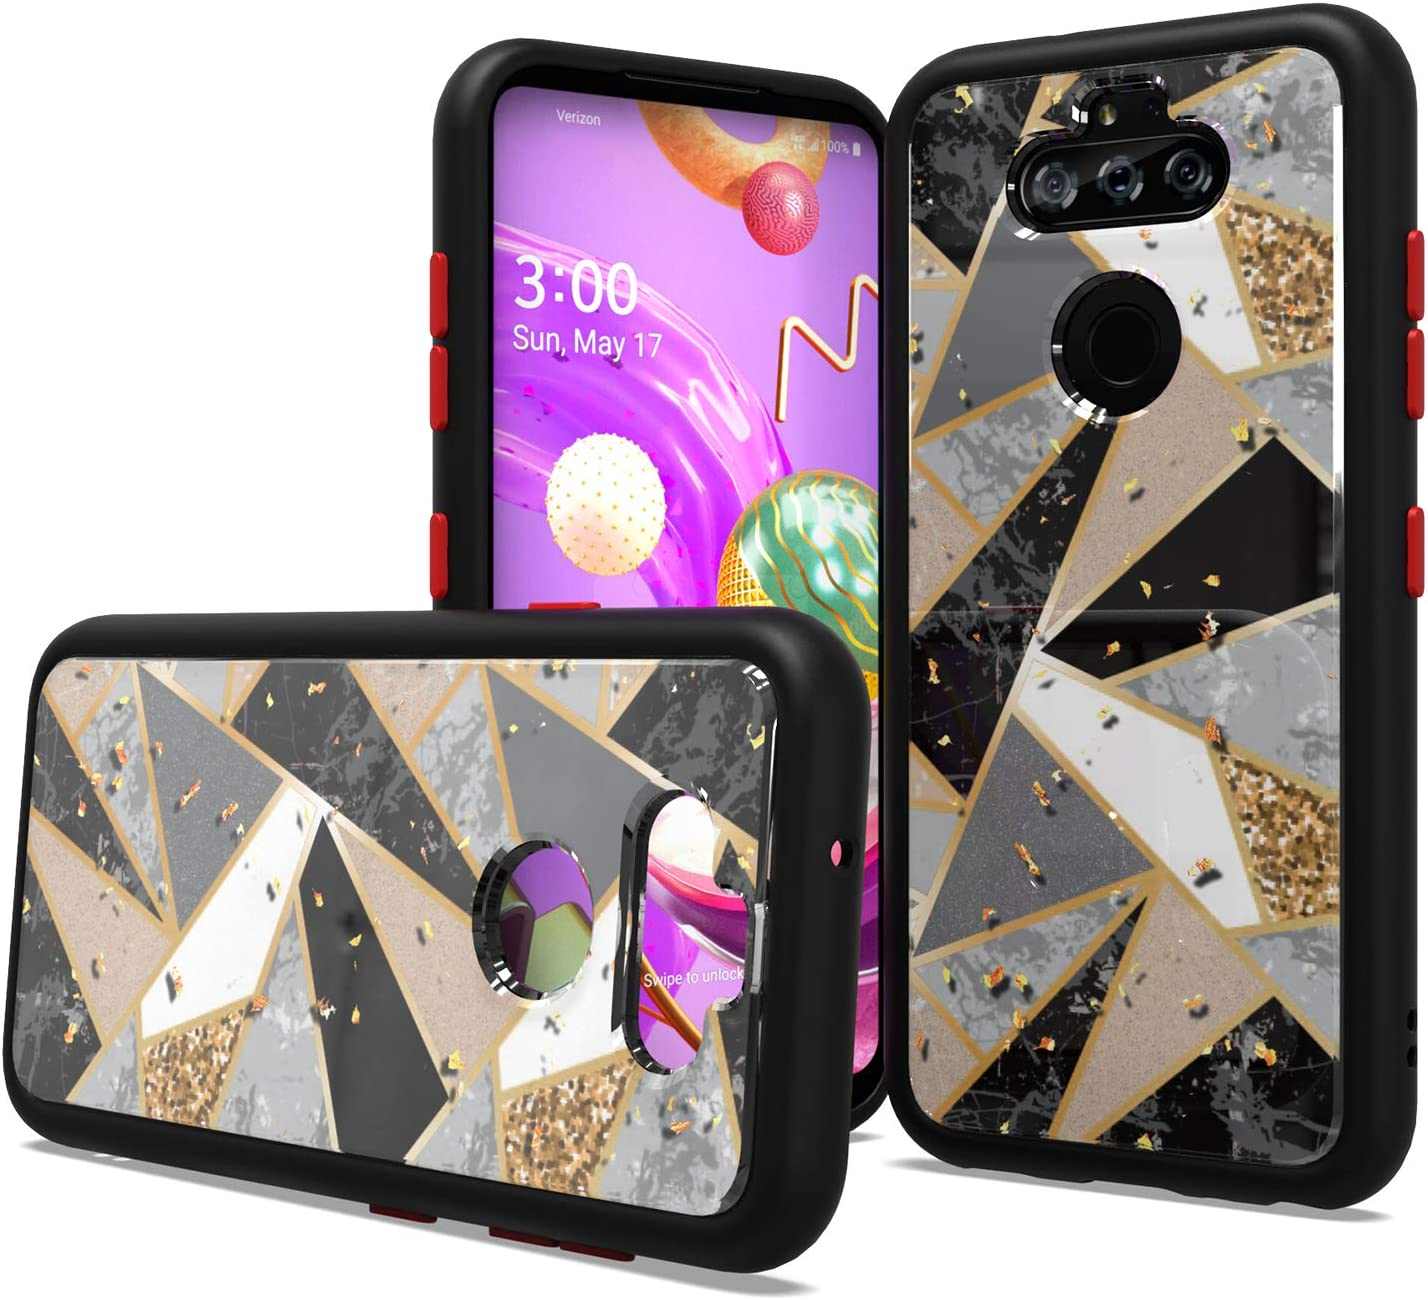 Fcclss Cell Phone Case for LG K31 / Aristo 5 / Phoenix 5 / Risio 4 / K8x / Fortune 3 / Tribute Monarch, Heavy Duty Hybrid Case with Glitter Black Marble Printed Pattern, Shockproof Protective Case